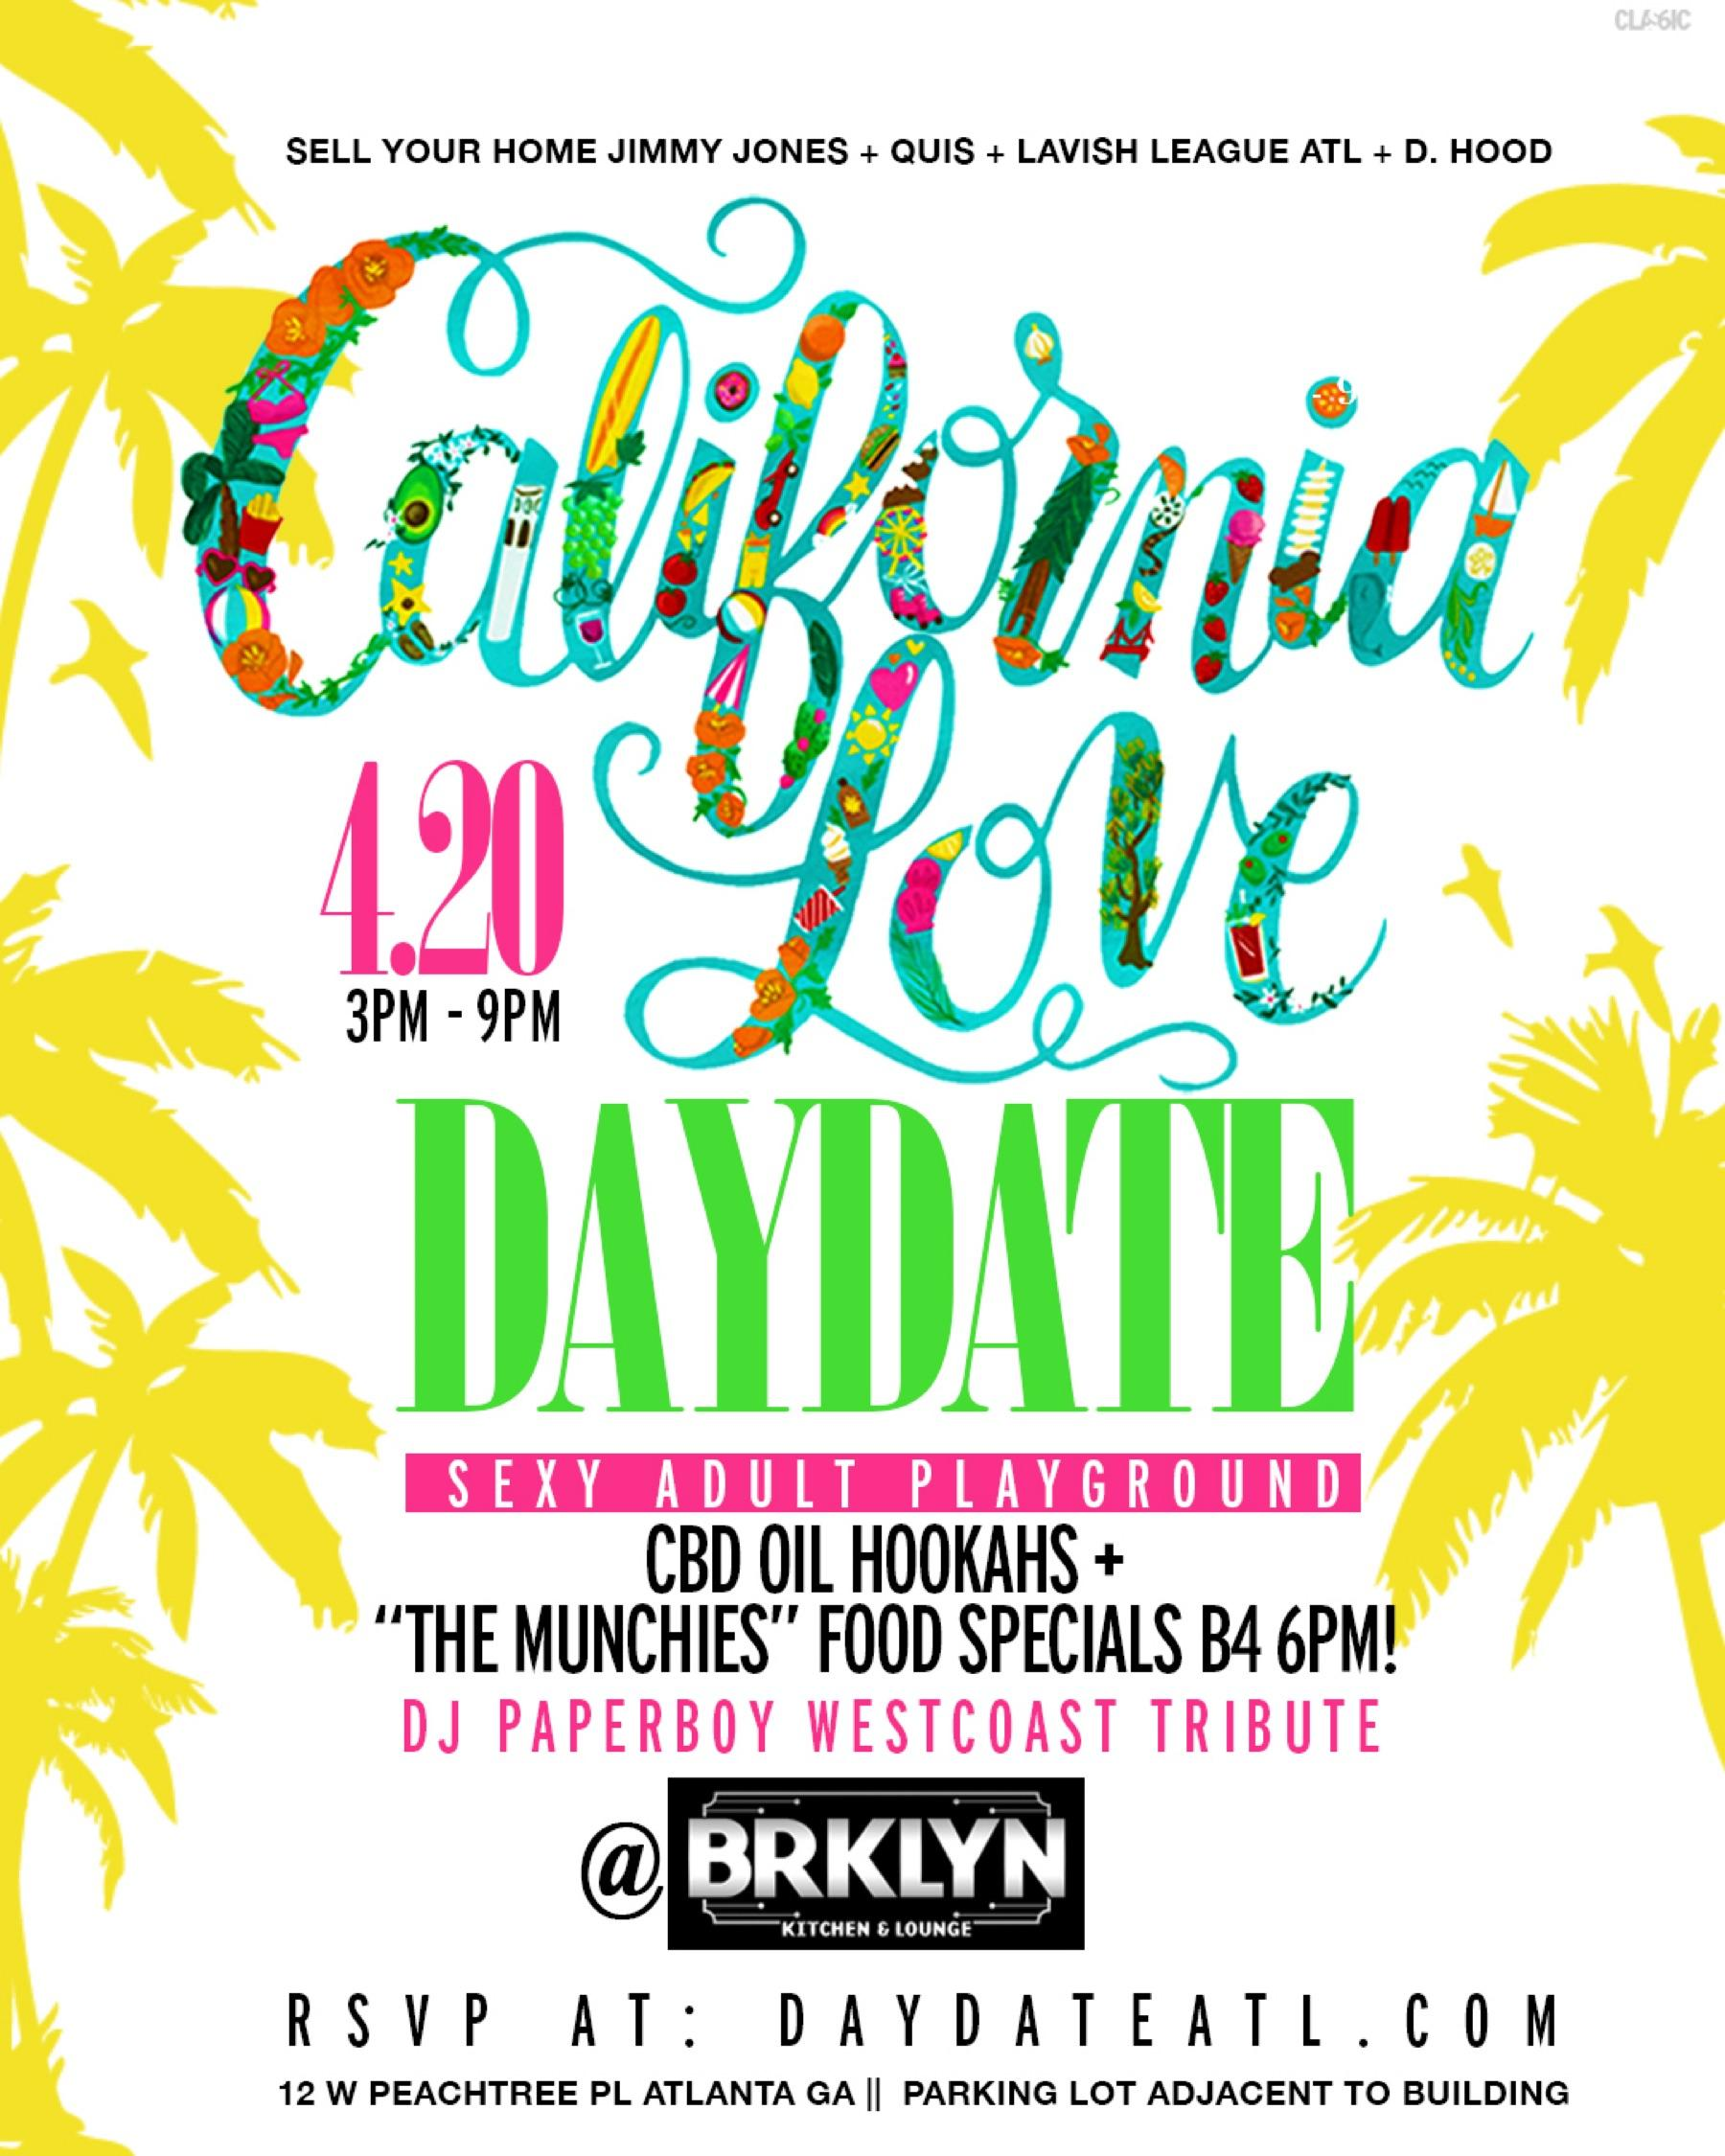 DAY DATE SATURDAYS @BRKLYN LOUNGE  (DAY PARTY)